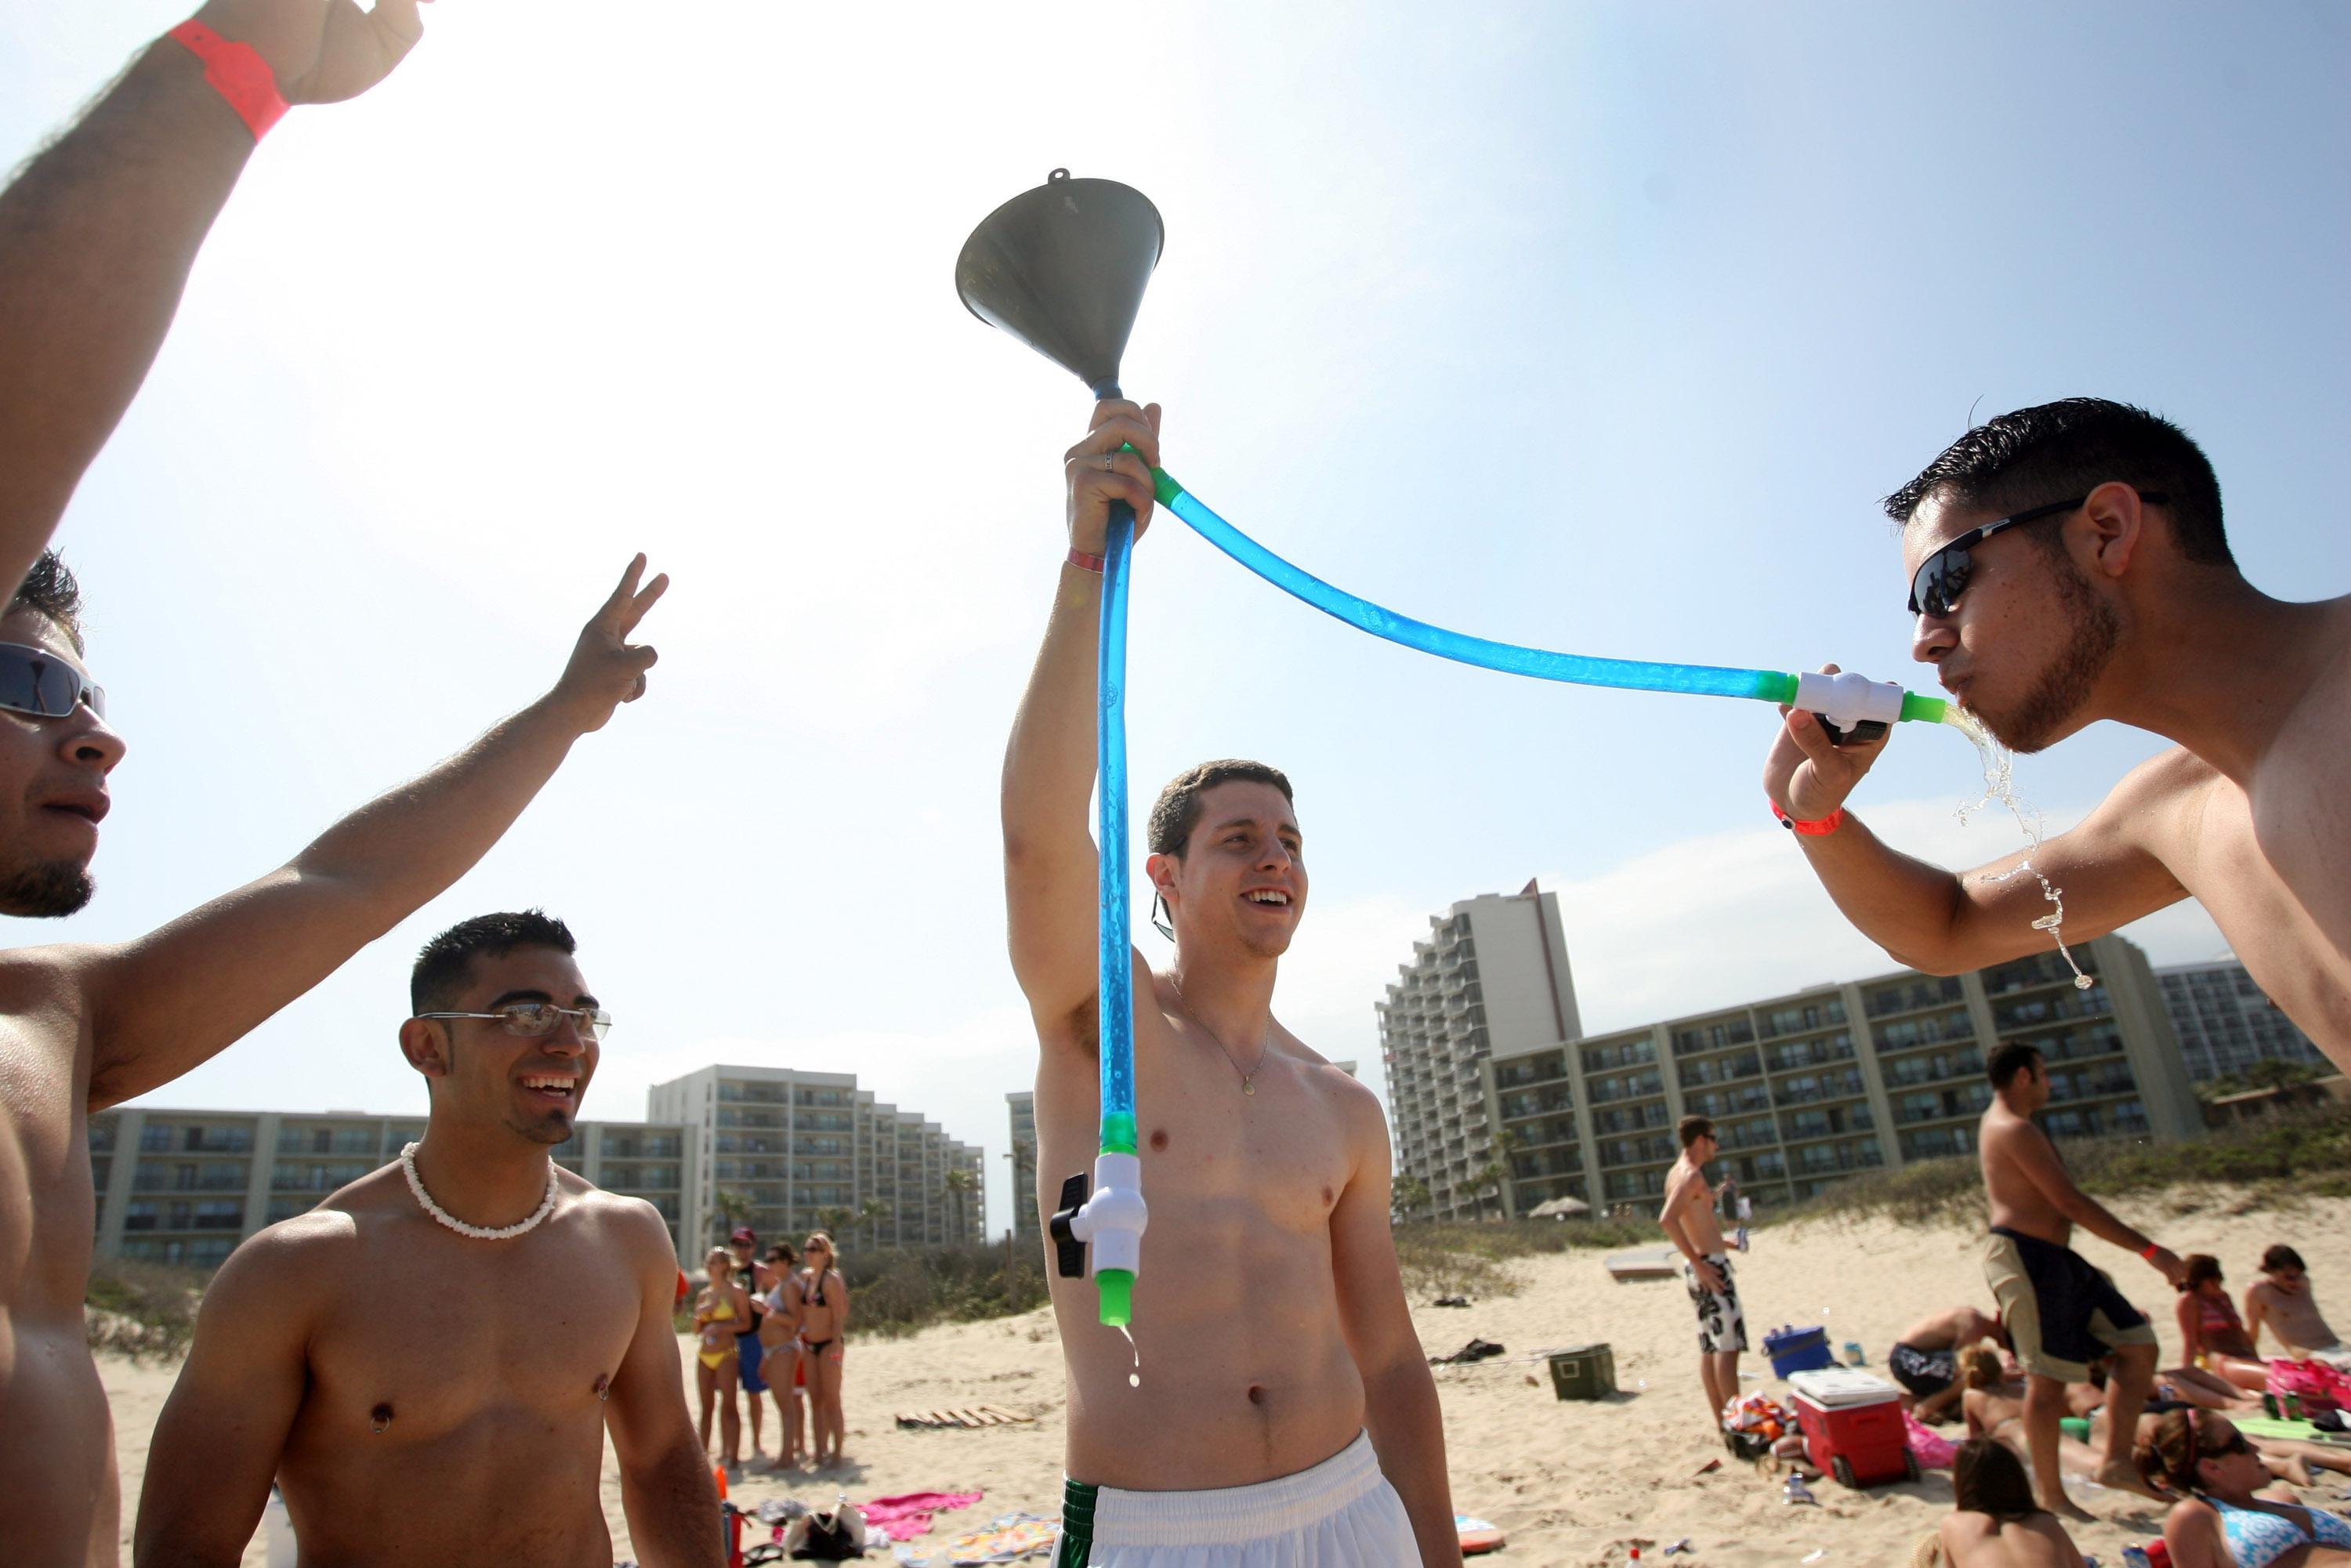 Students from the University of Texas-El Paso drink beer from a funnel on the beach during the annual ritual of Spring Break March 25, 2008, on South Padre Island, Texas.